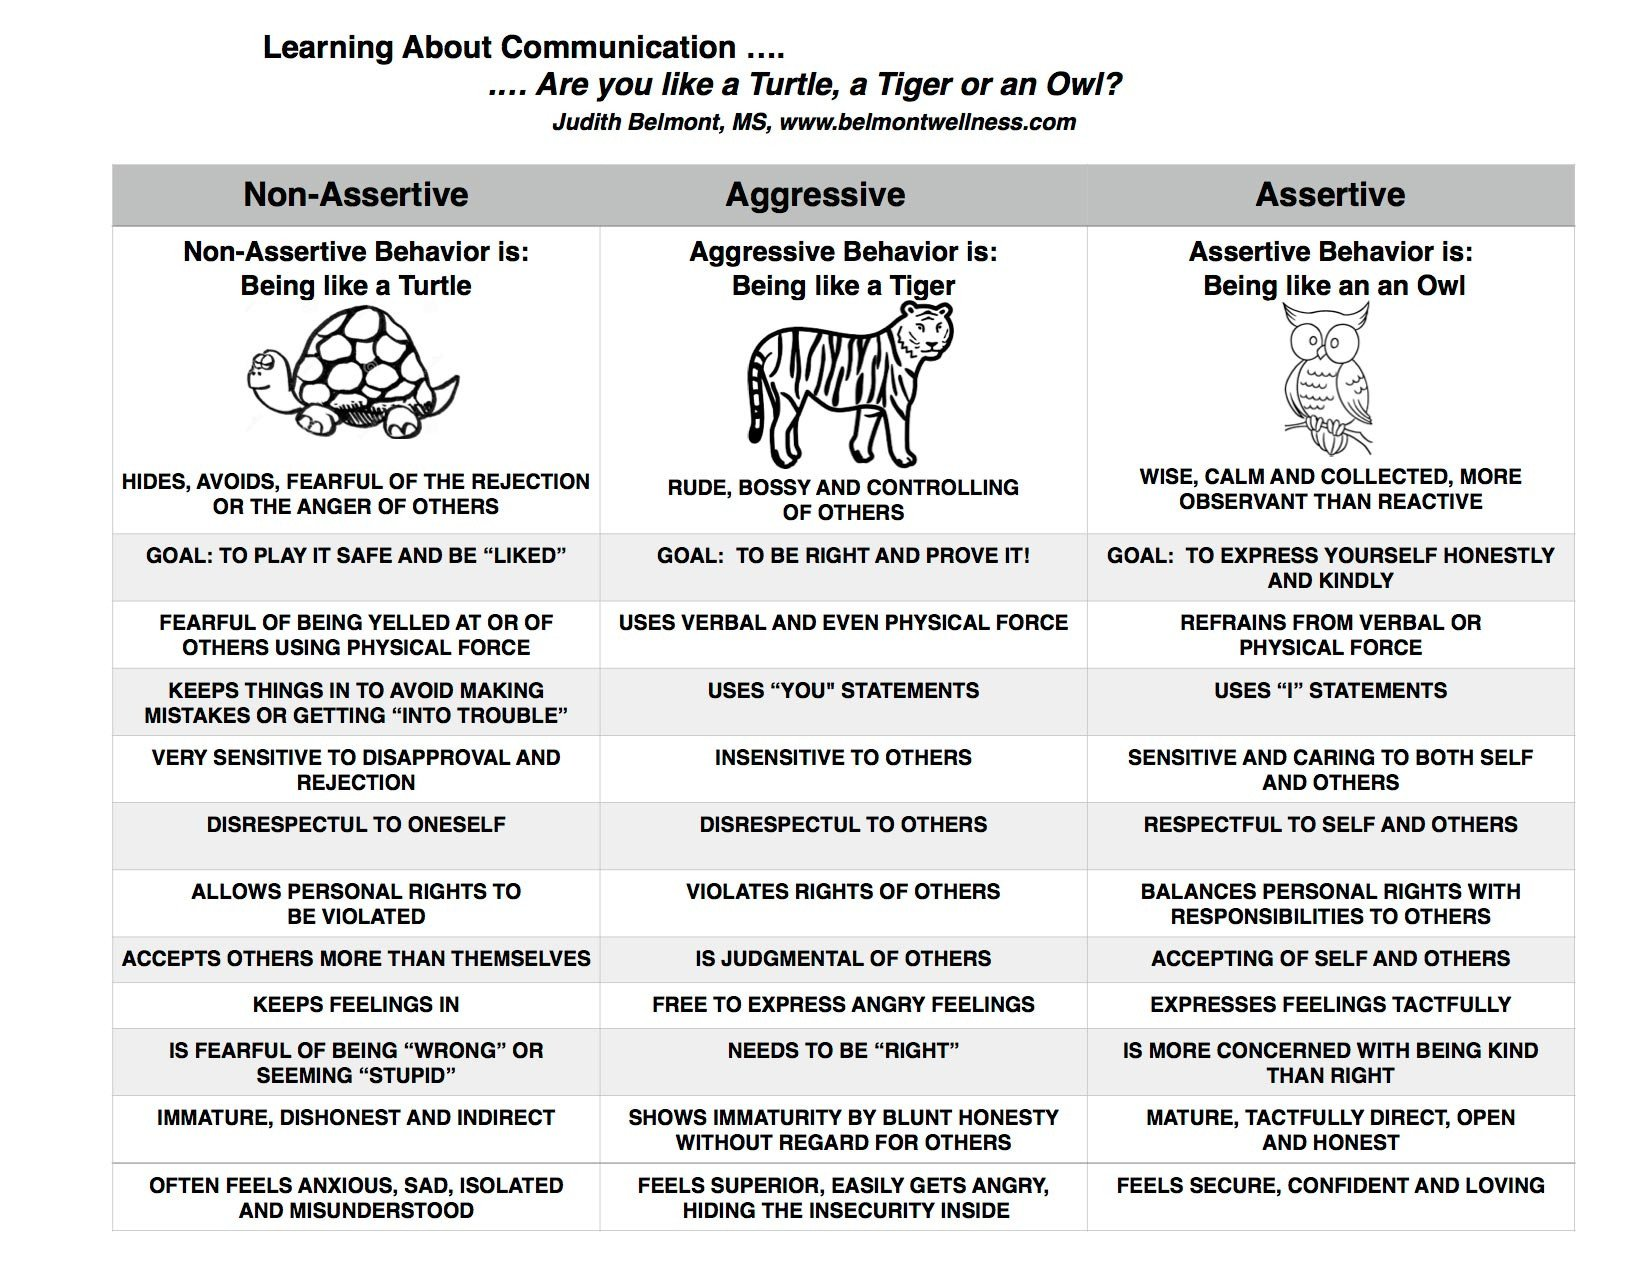 Family therapy Communication Worksheets Psychoeducational Handouts Quizzes and Group Activities